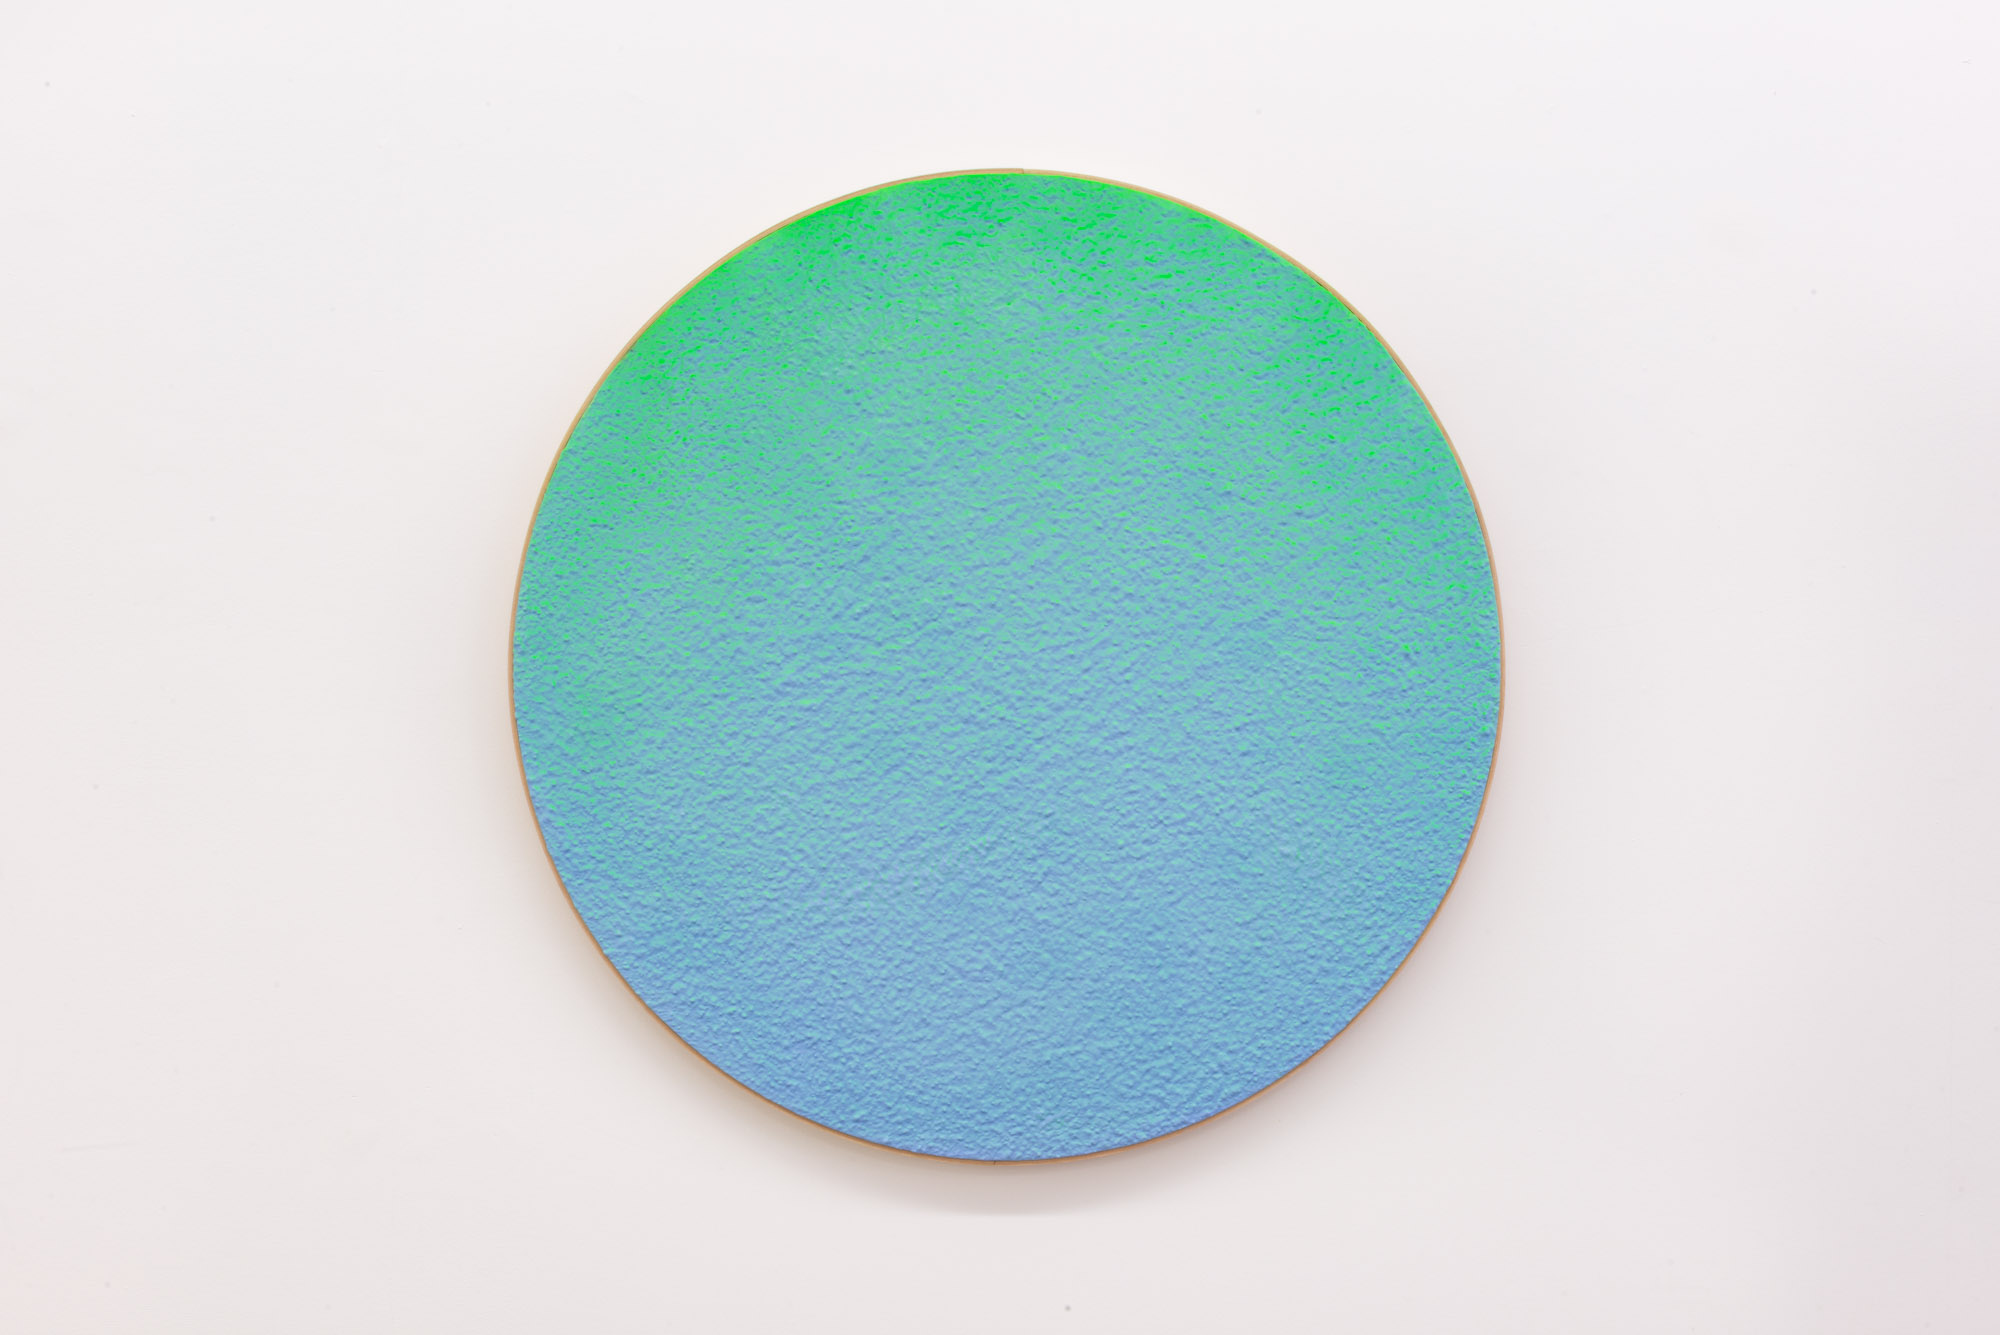 """Pierre Julien,  In the Deepest Oceans  - C004, 2018, stucco, acrylic and spray paint on wood panel, 30"""" diameter (76 cm)"""